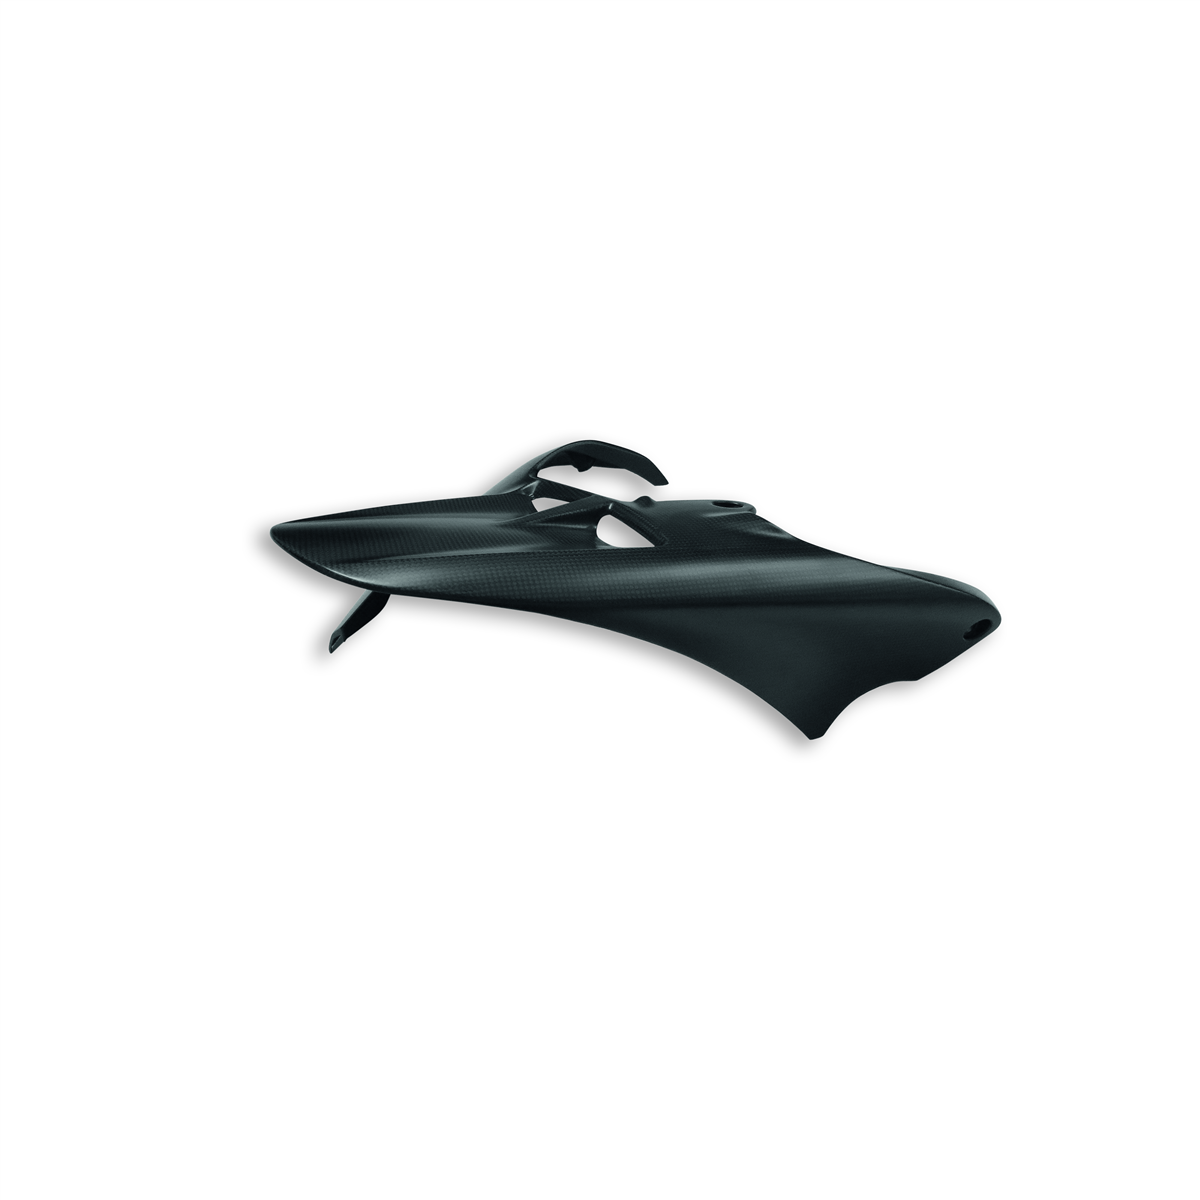 Carbon rear mudguard. 96980821A